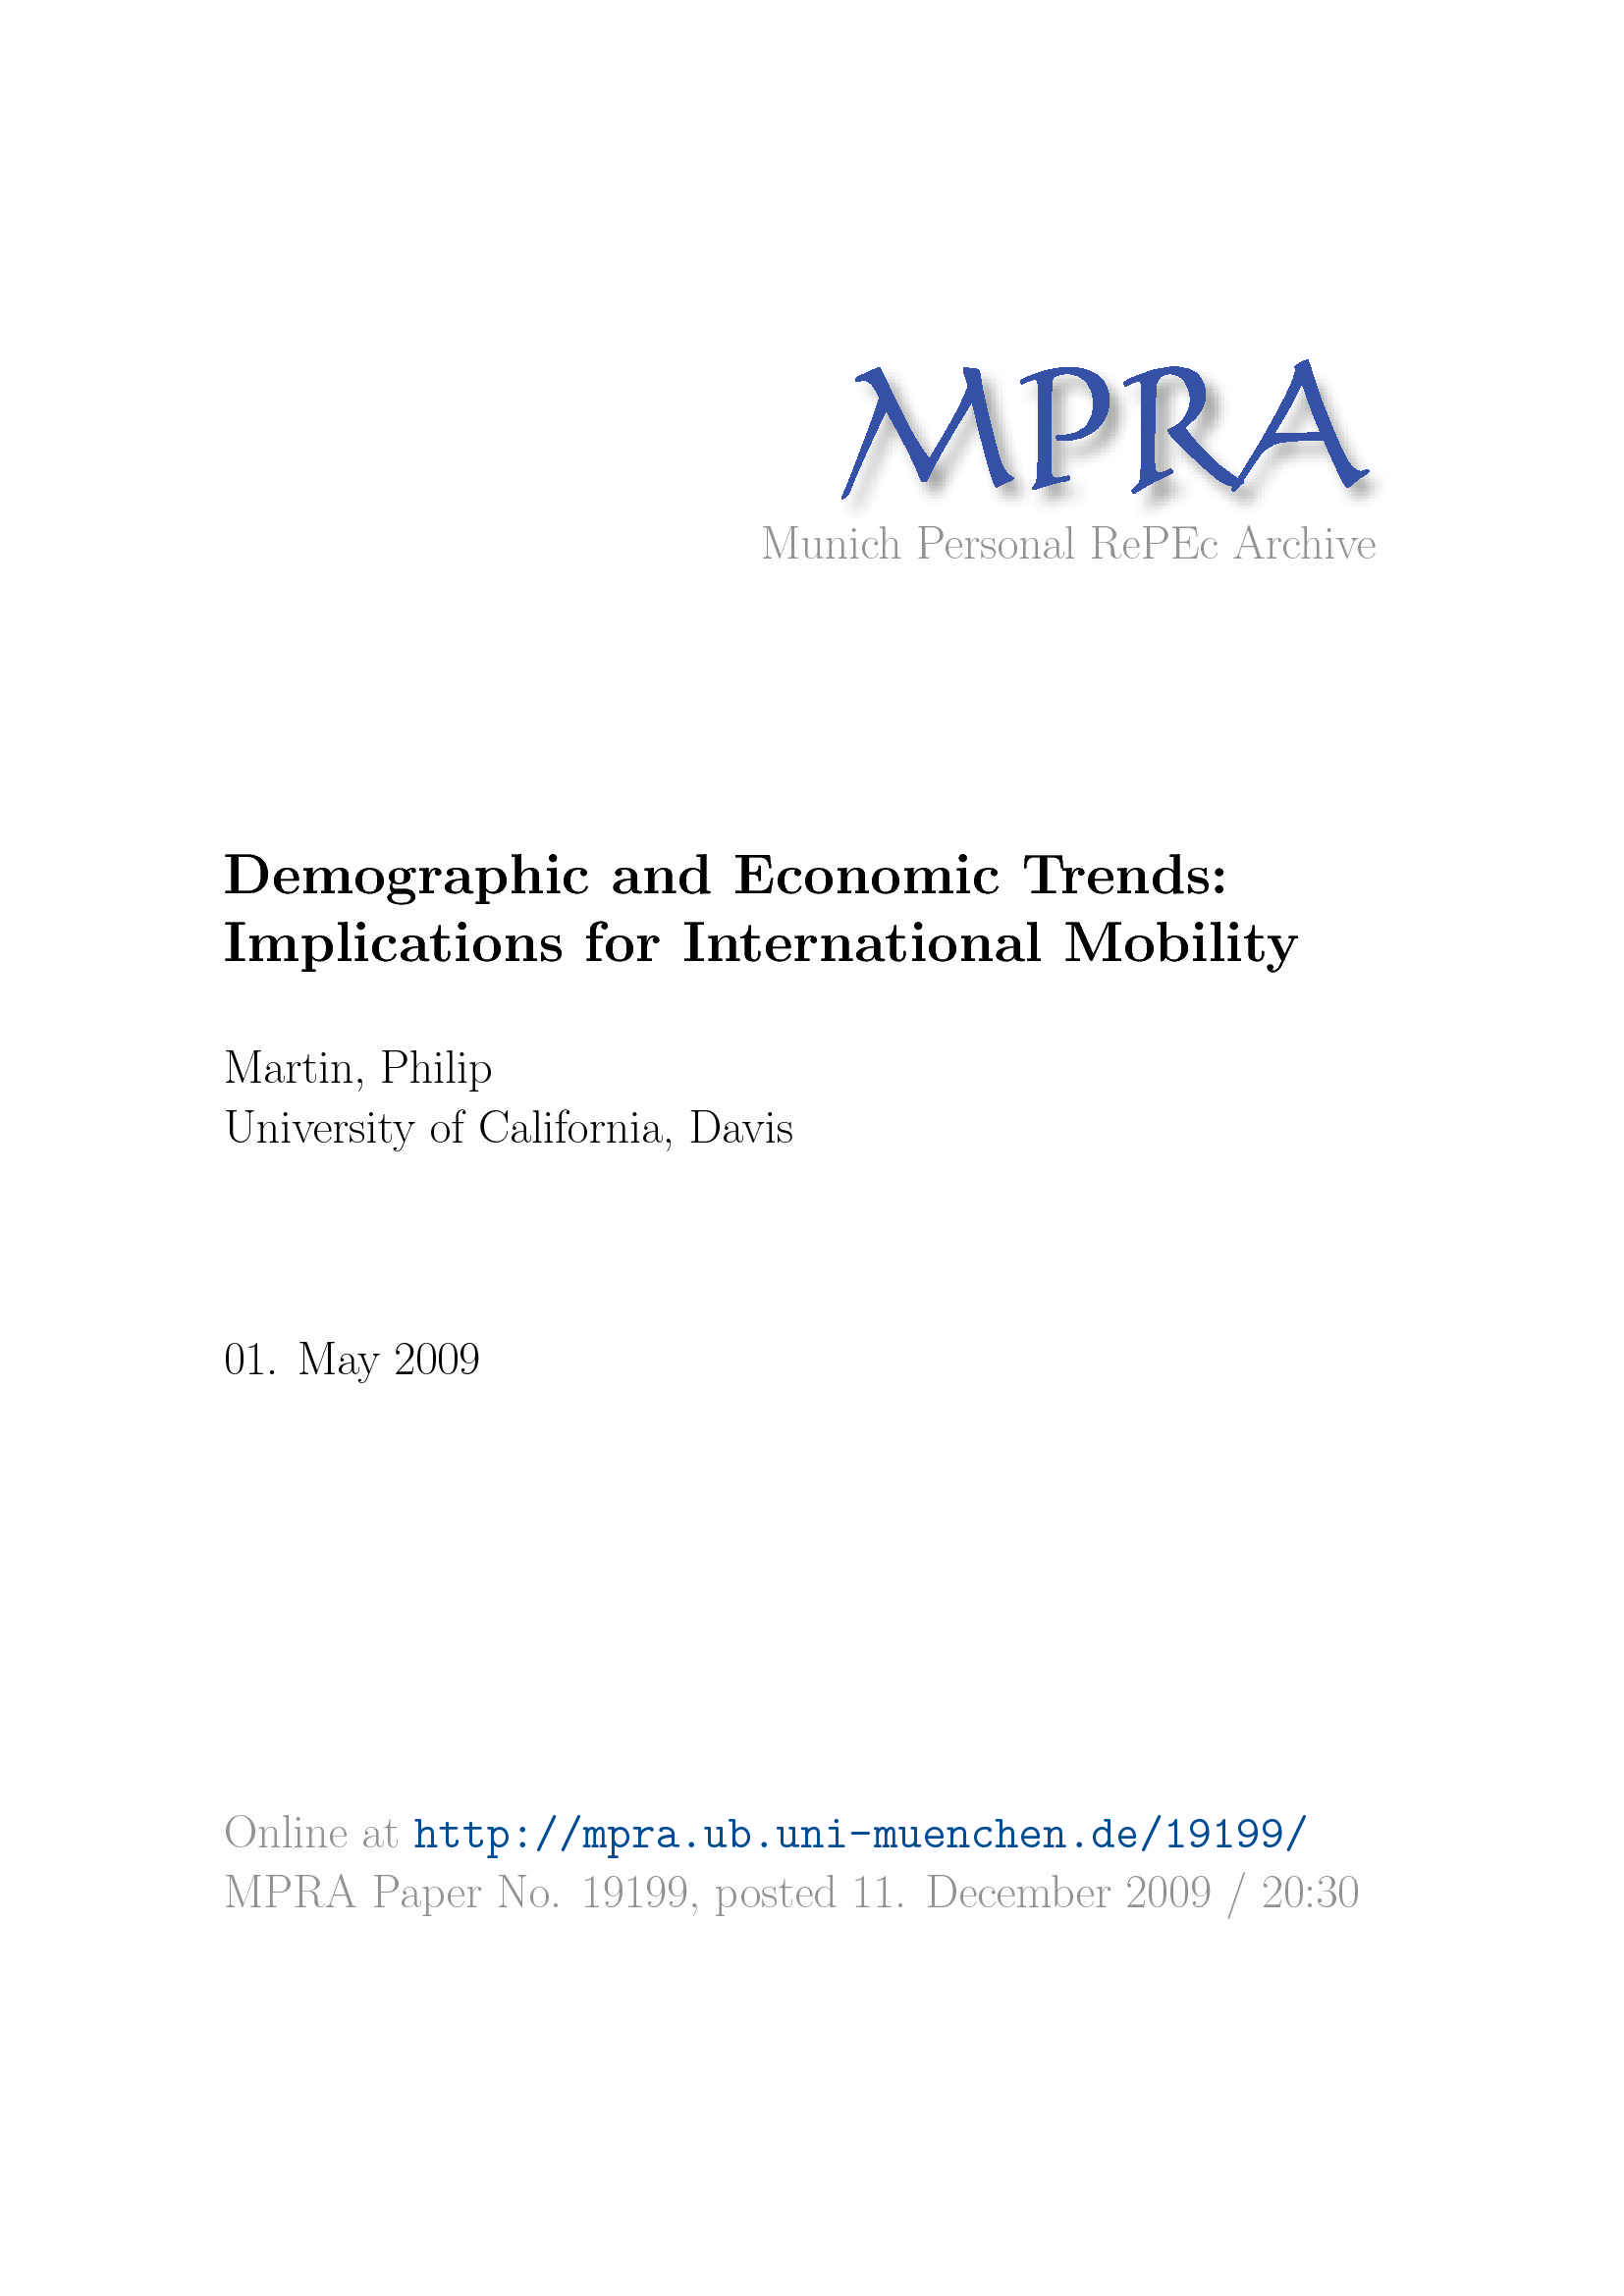 Demographic and Economic Trends - Martin